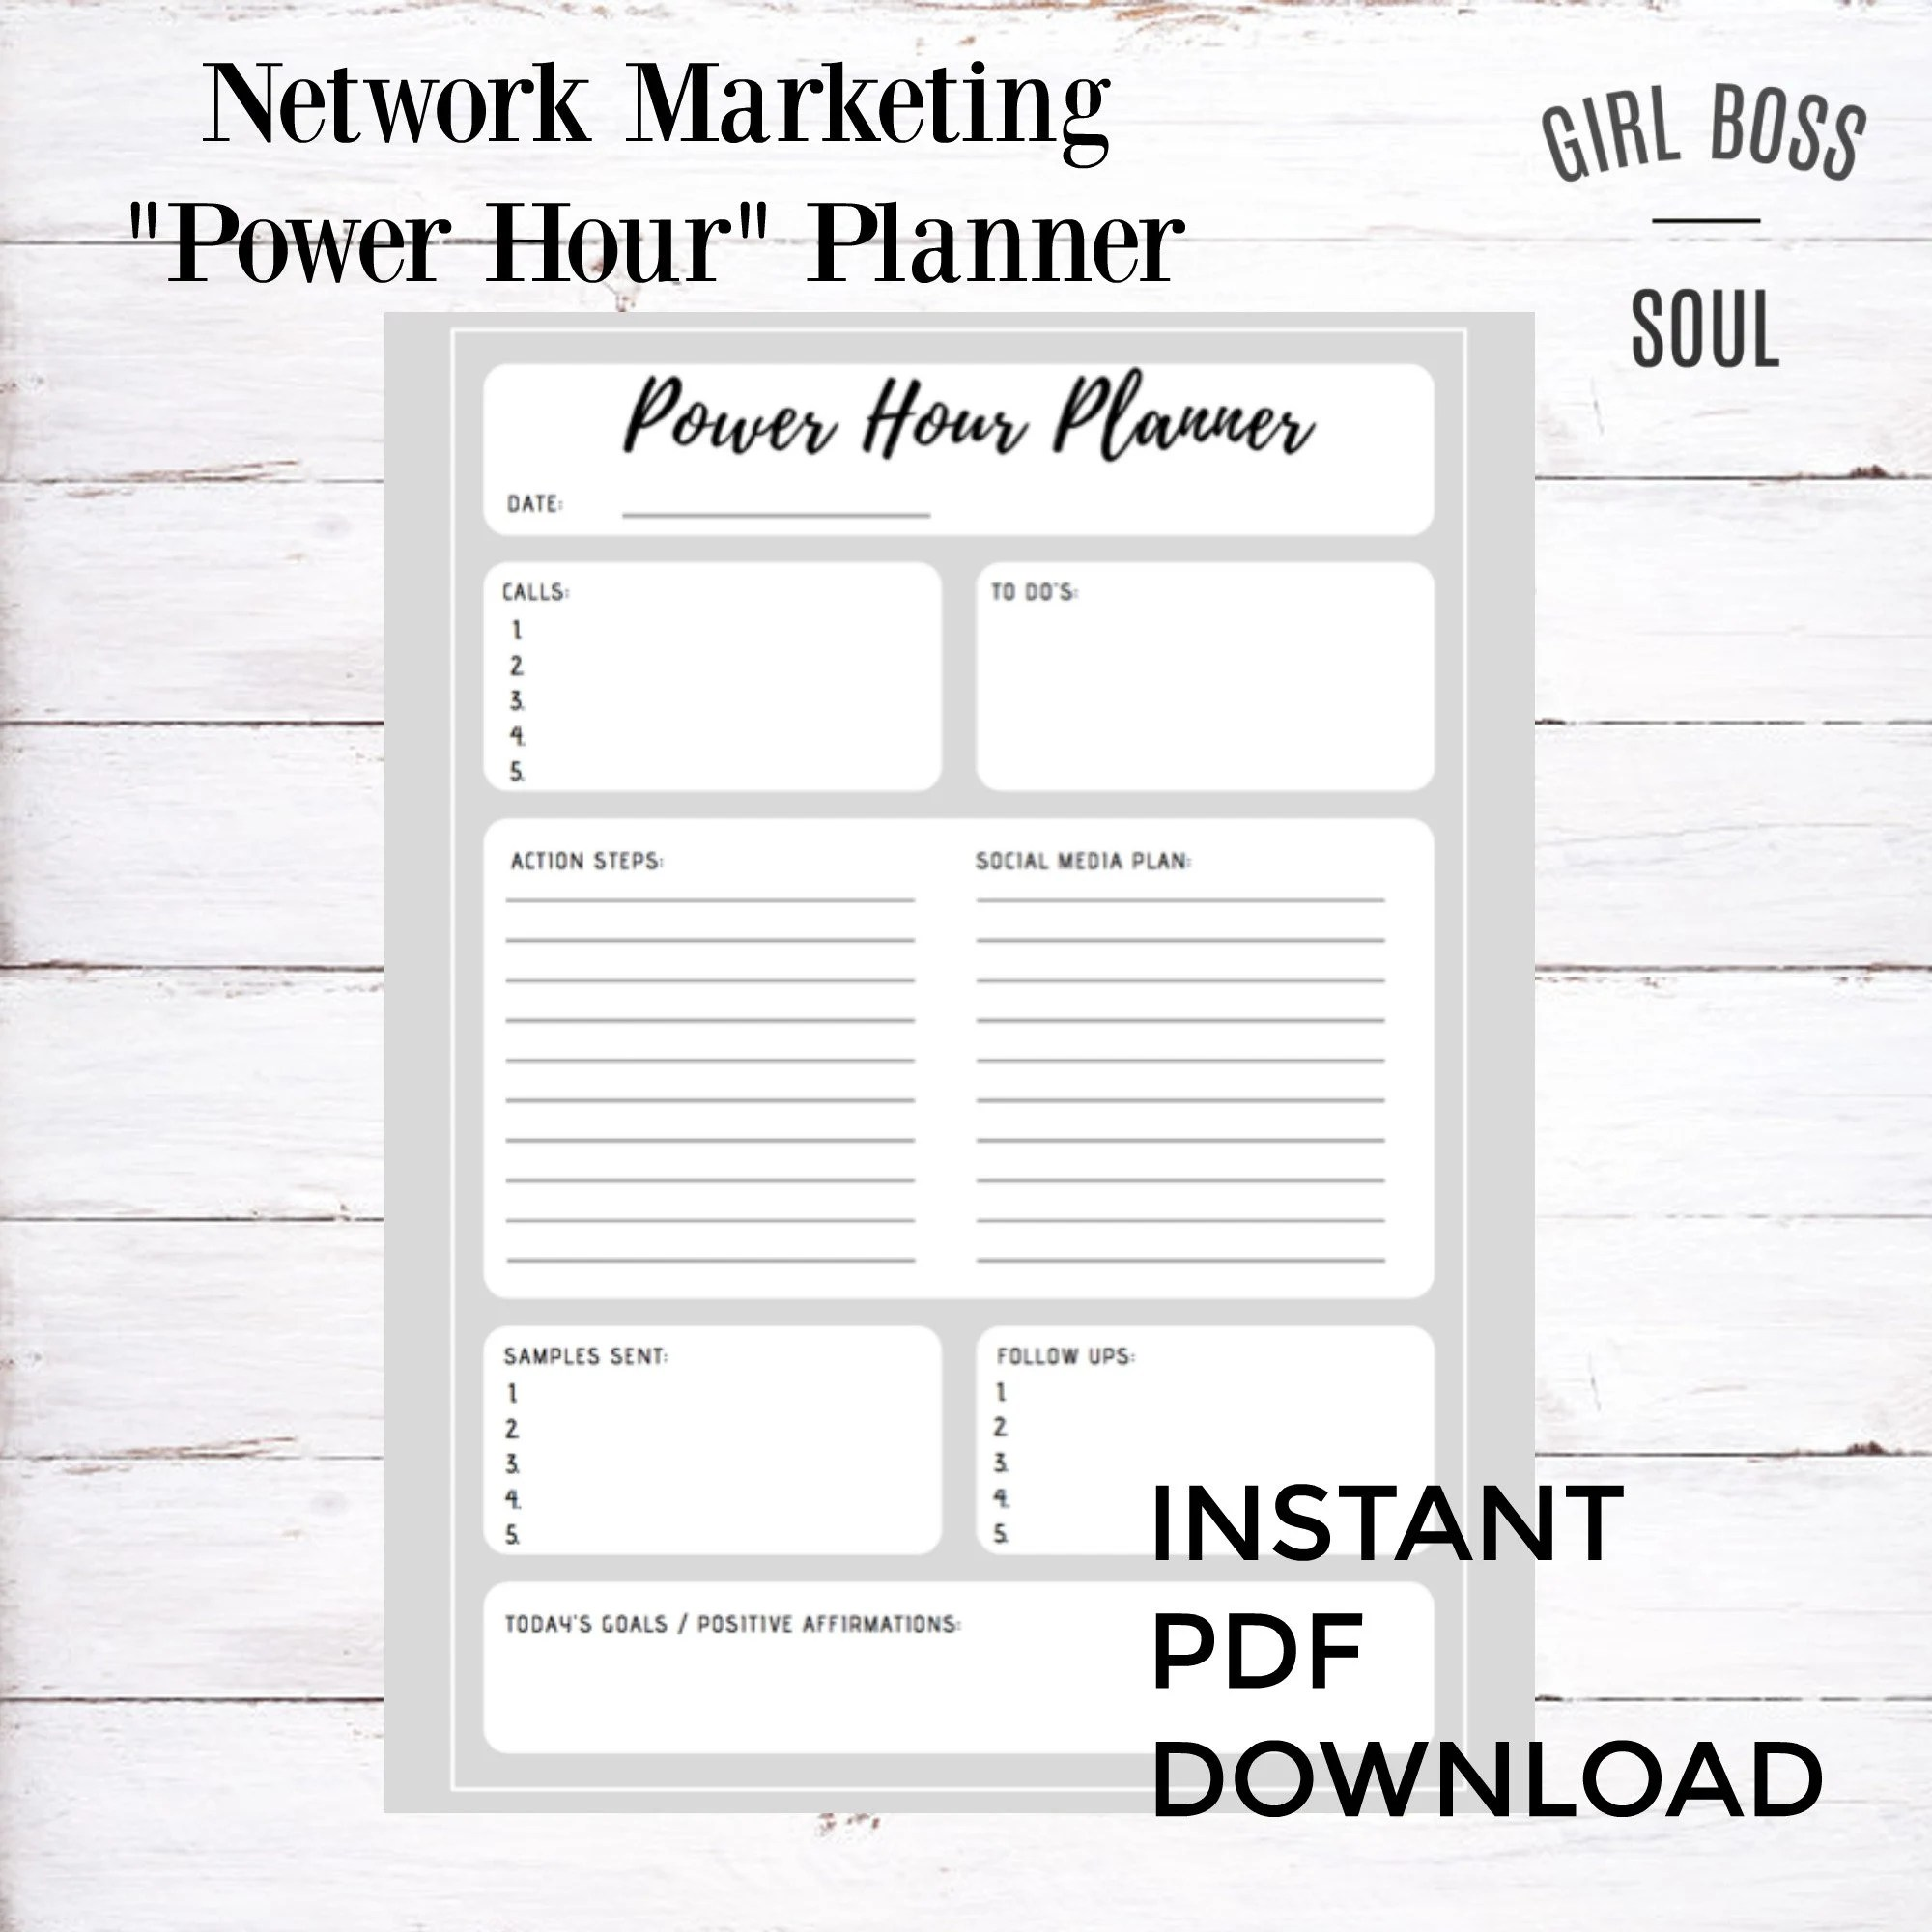 Power Hour Planner for Network Marketers MLM Goal Planner